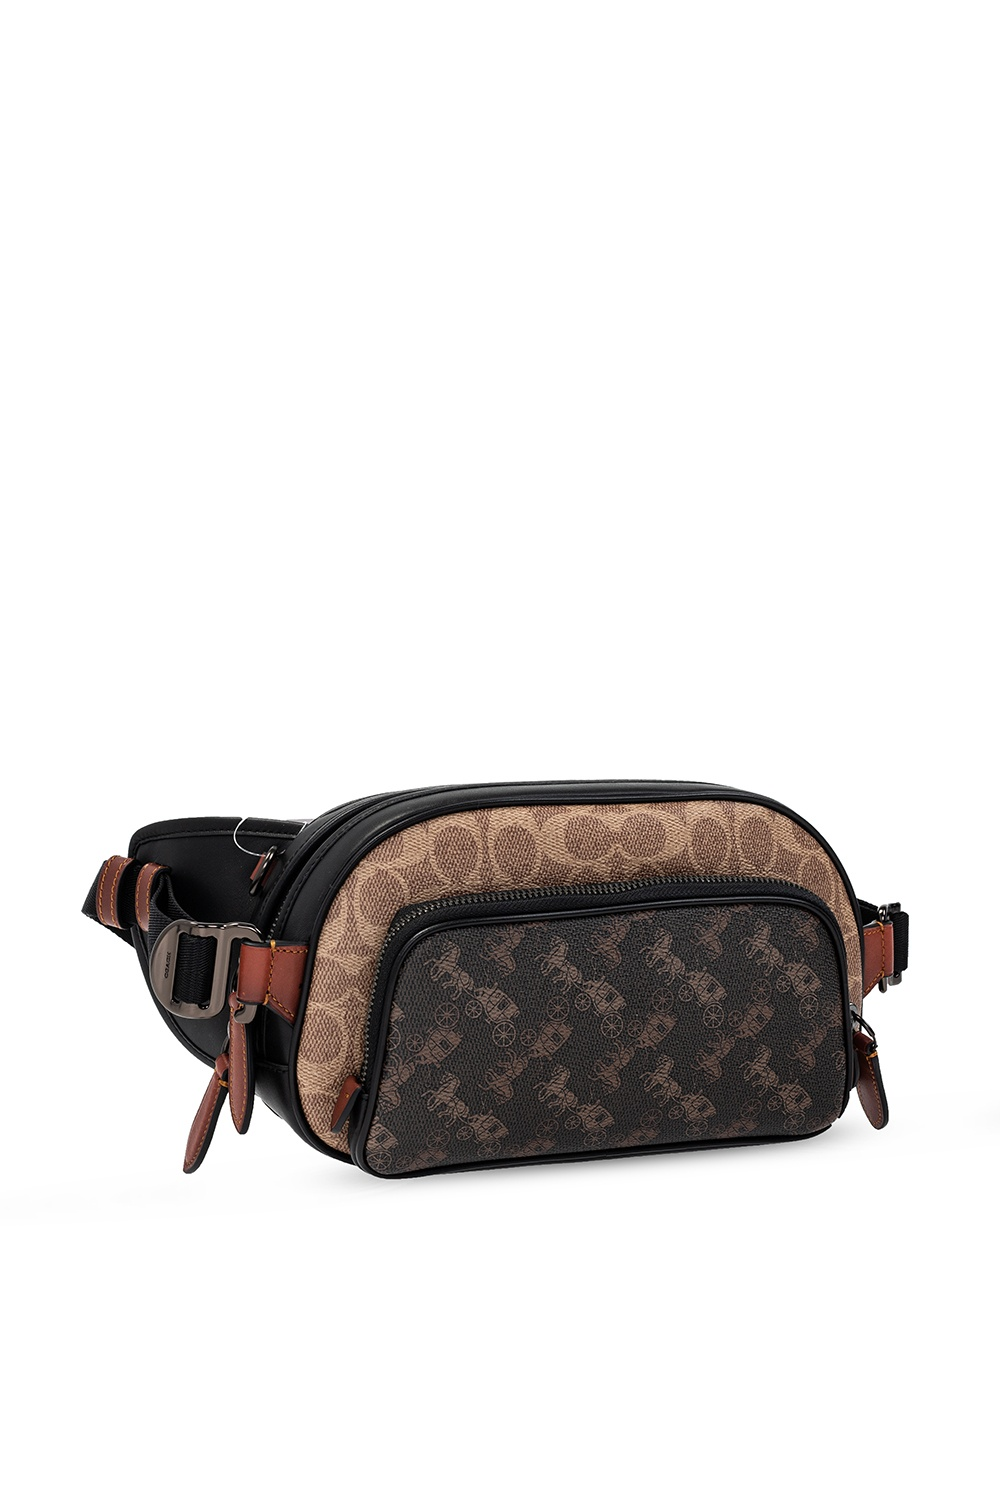 Coach 'Hitch' belt bag with logo